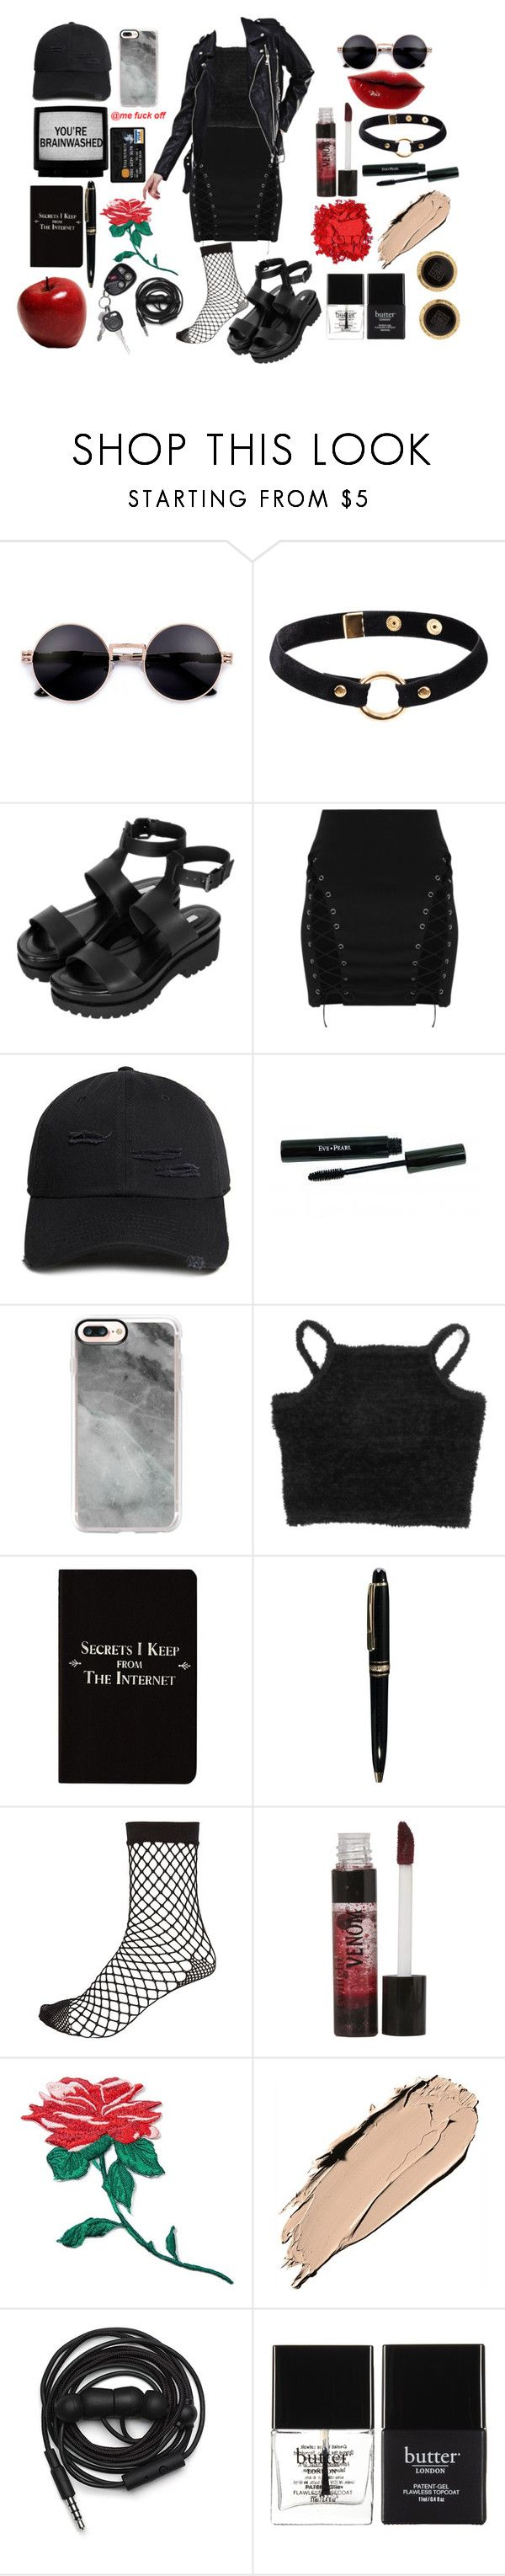 """""""O"""" by theflyingpanda ❤ liked on Polyvore featuring Nika, Topshop, 21 Men, Casetify, Rich and Damned, Mont Blanc, River Island, DuWop, band.do and NARS Cosmetics"""